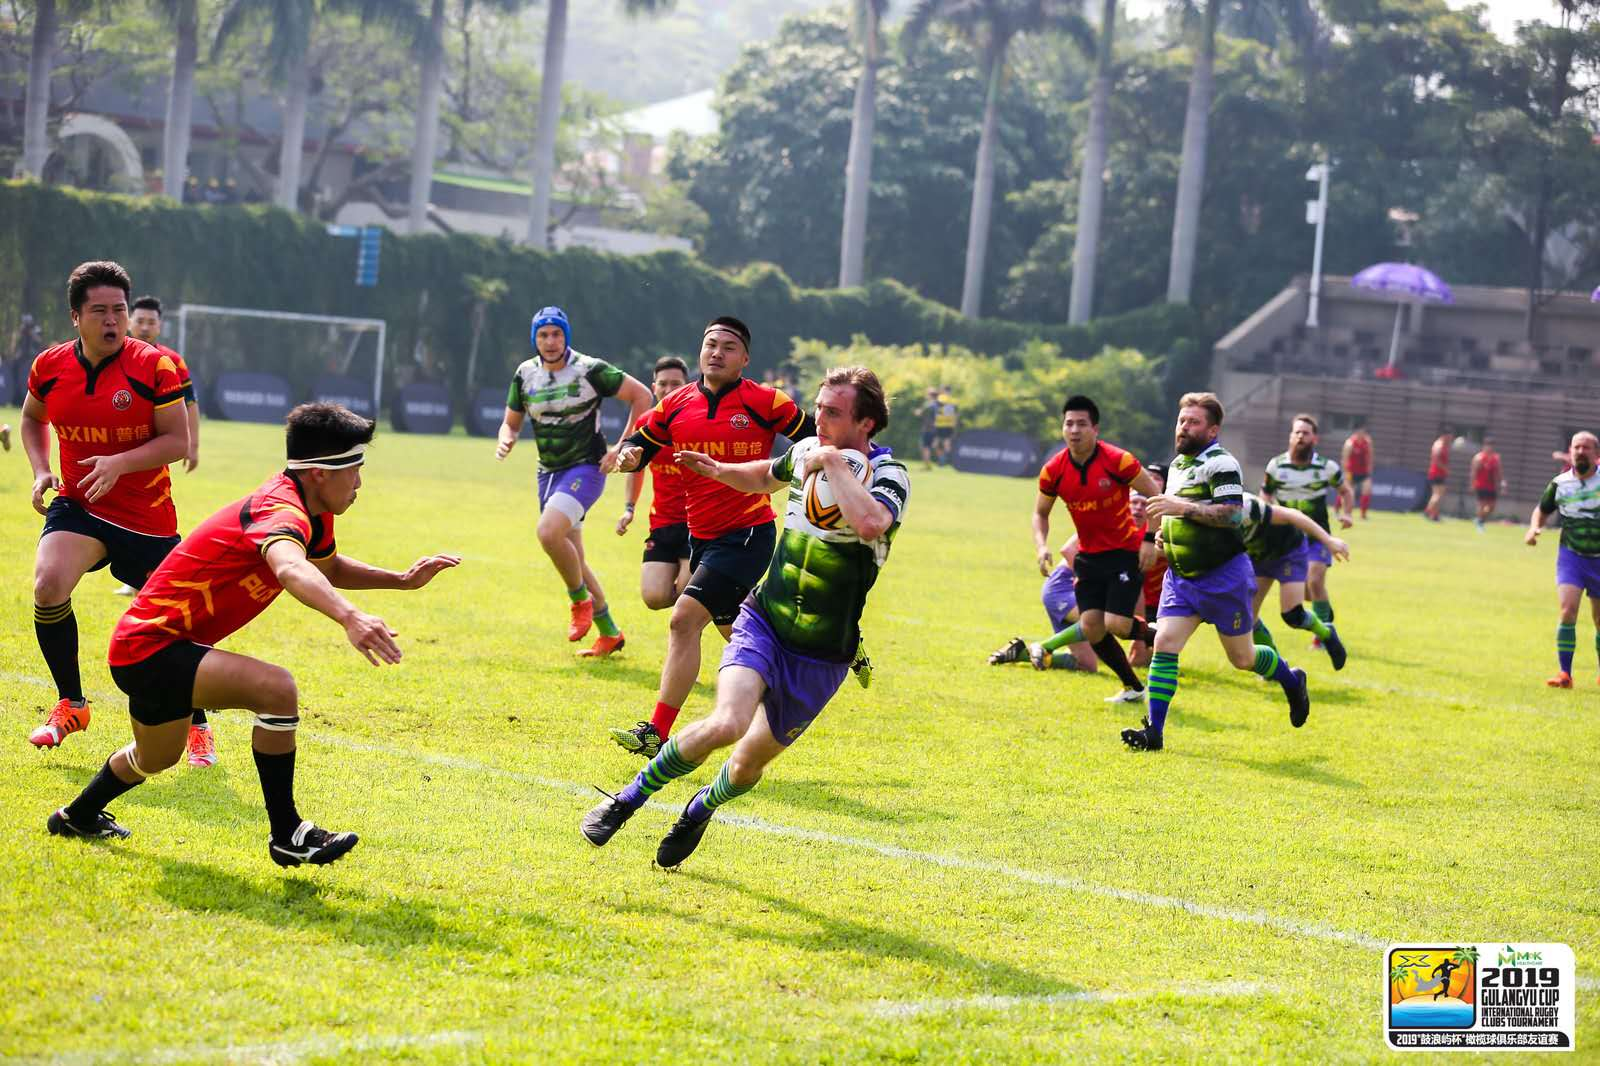 Pupils interest grows in rugby watching the Giants in Xiamen